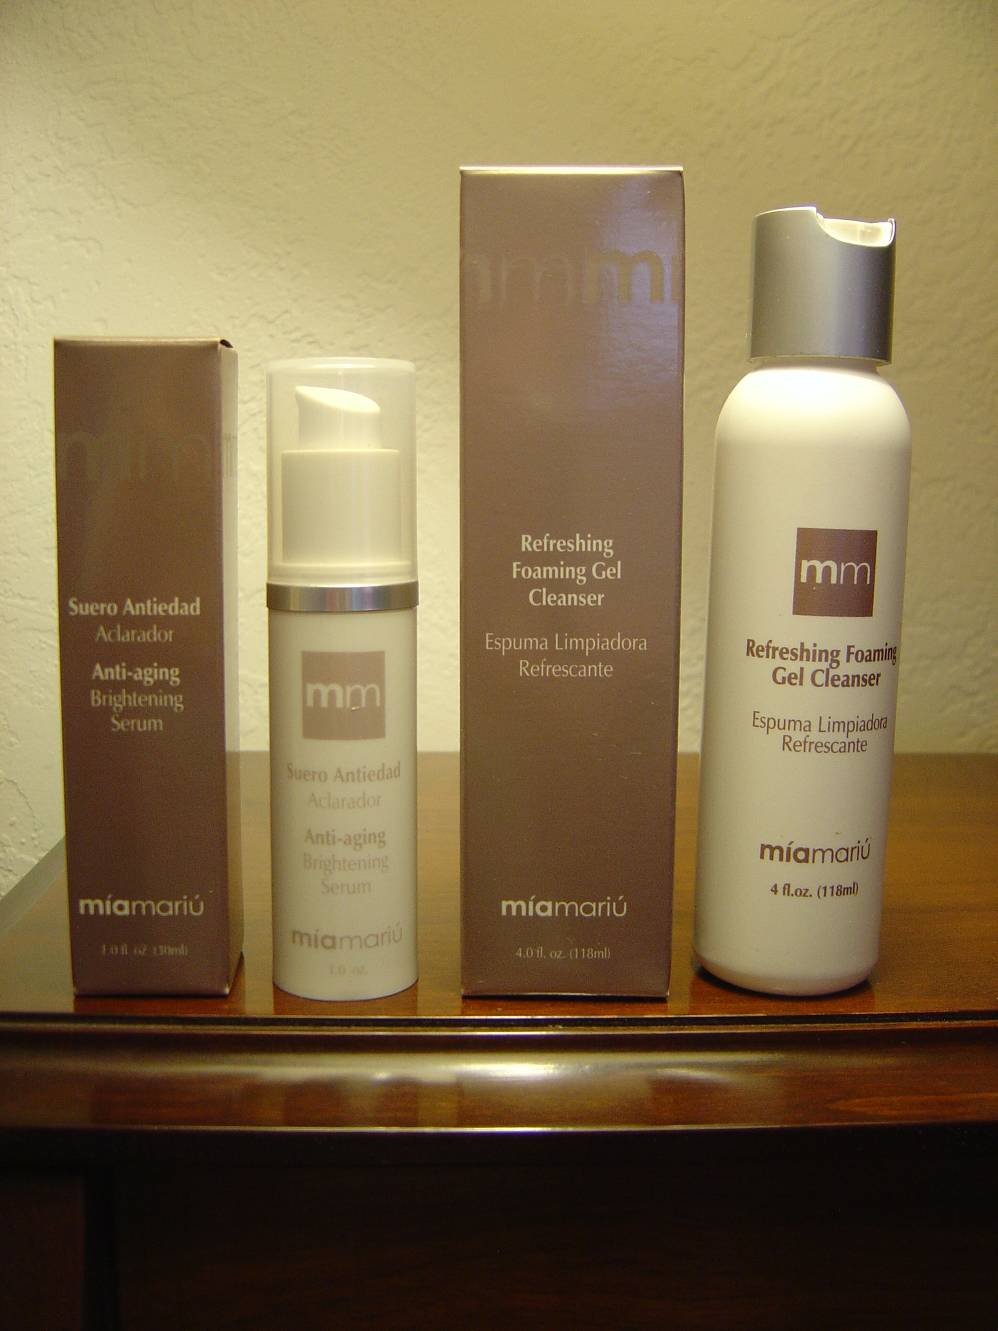 Mia Mariu Anti-Aging Brightening Serum & Refreshing Foaming Gel Cleanser.jpeg